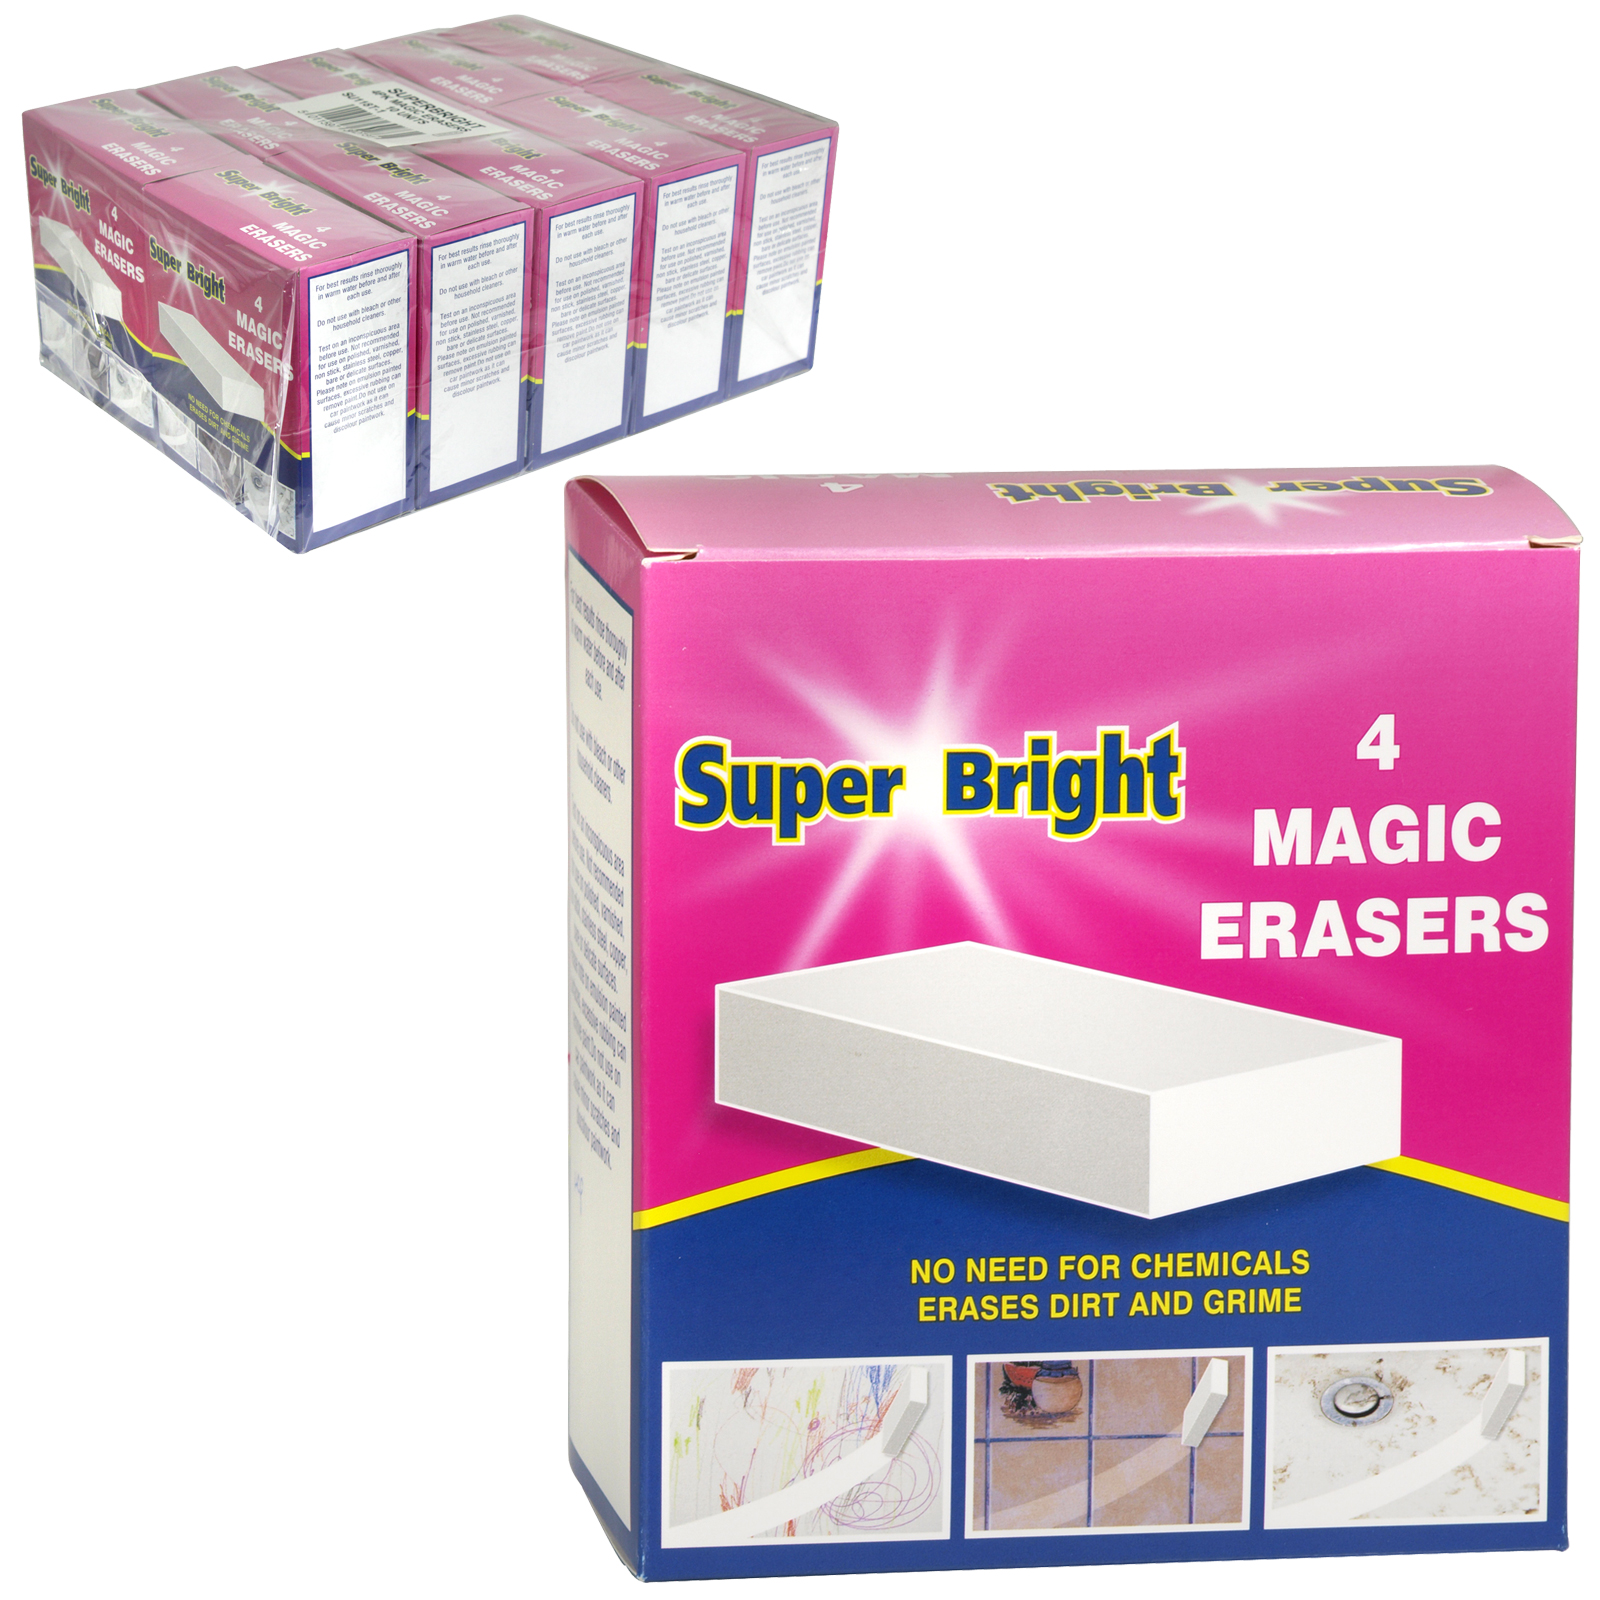 SUPERBRIGHT 4 MAGIC ERASERS X10